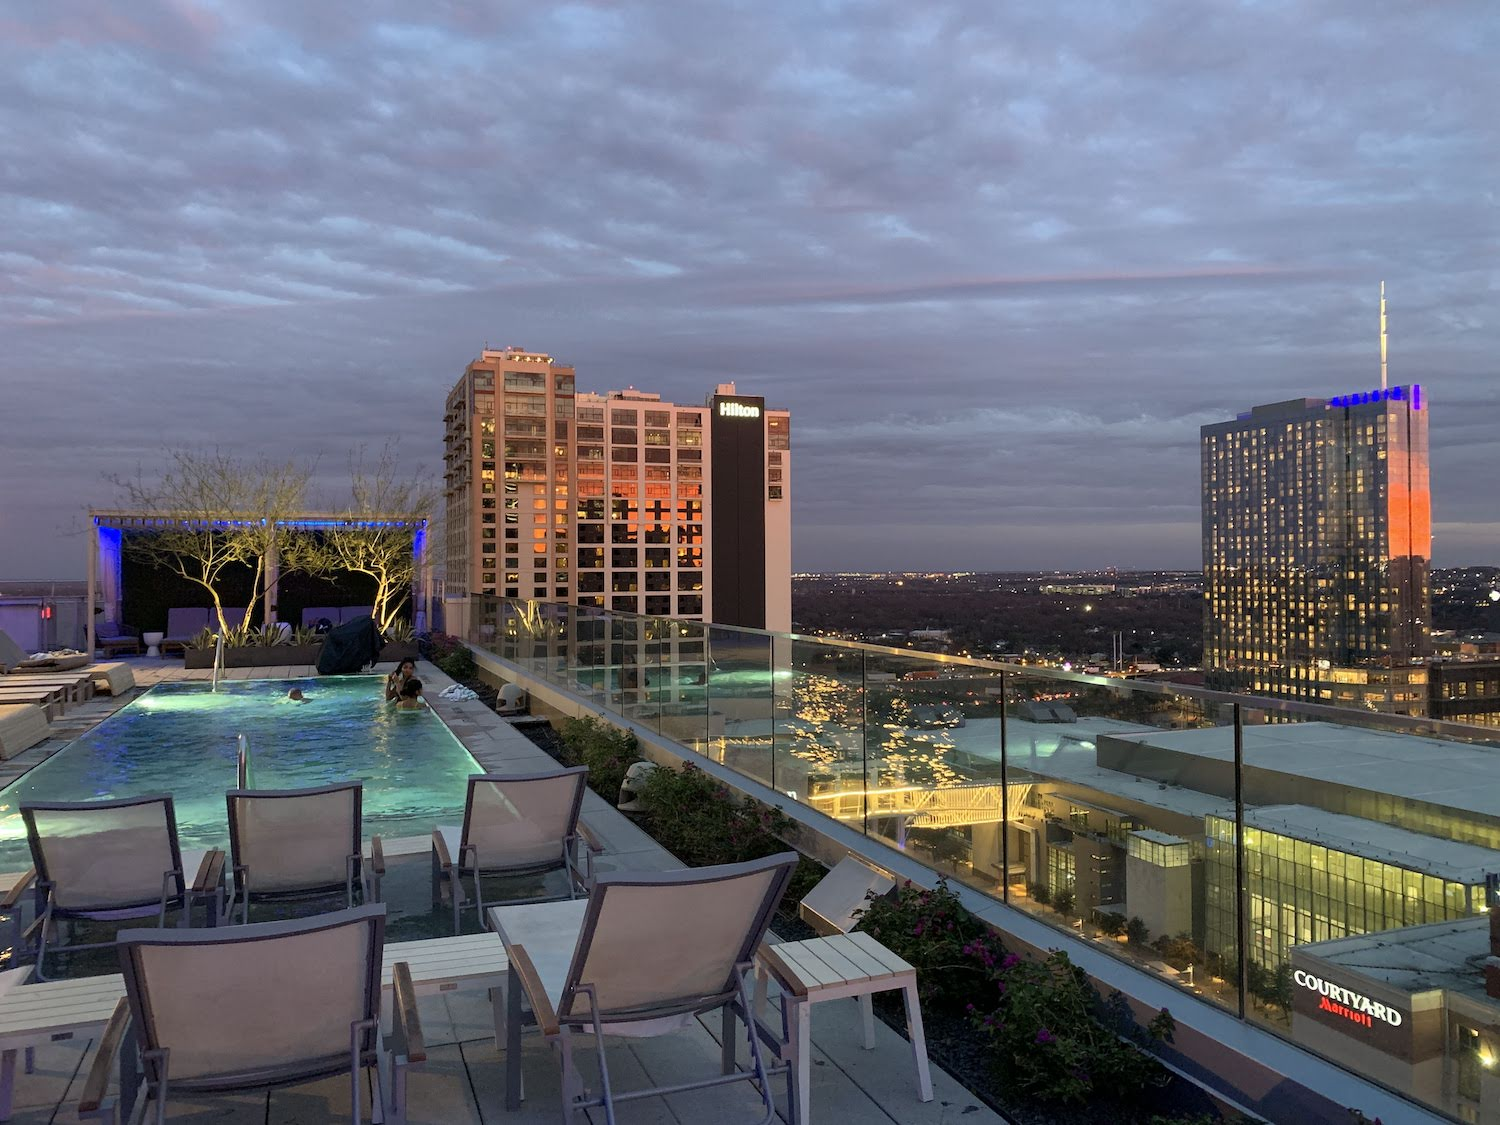 Westin Austin Downtown Hotel Rooftop Pool and View